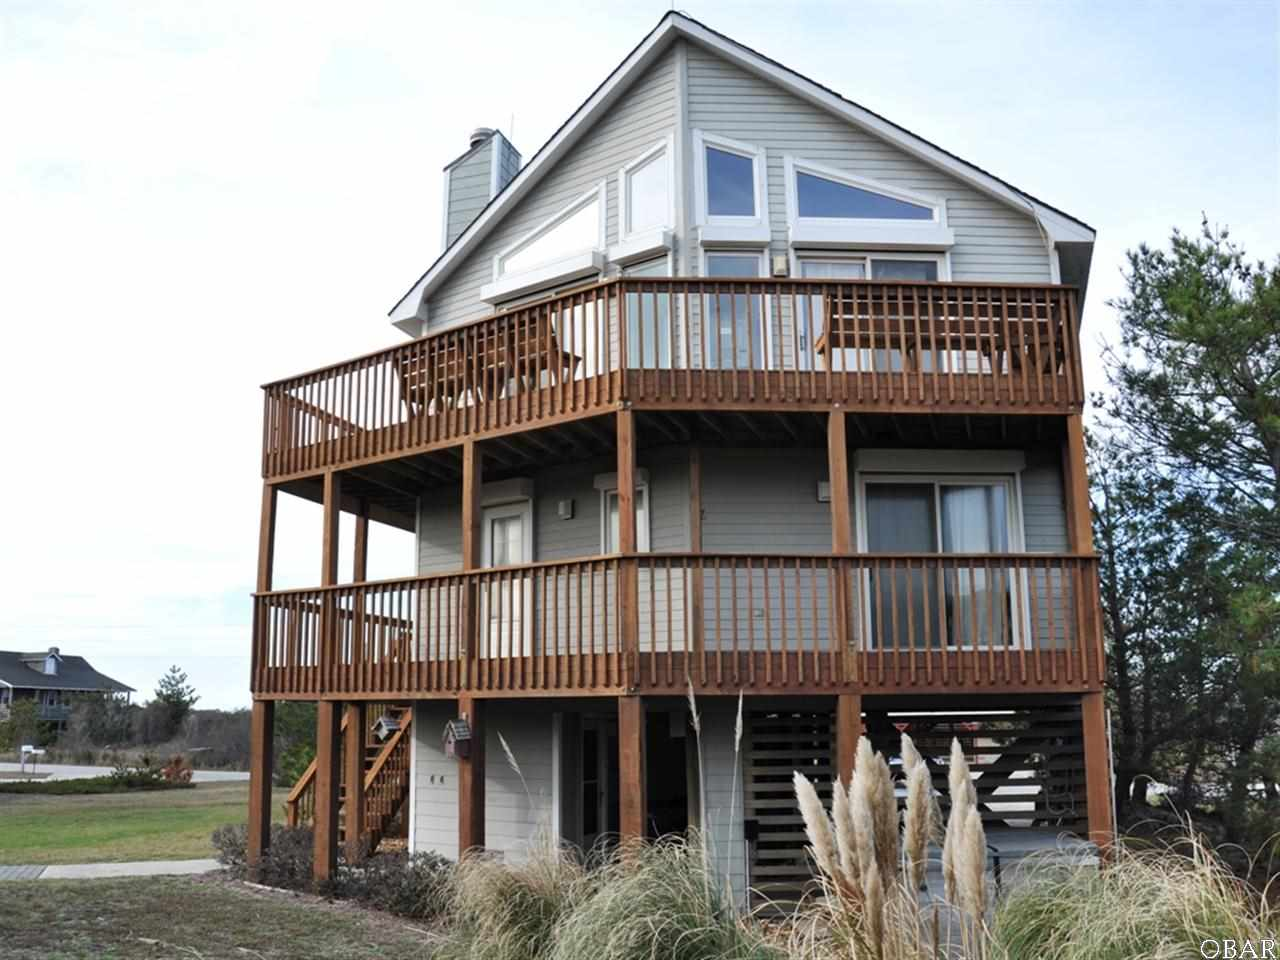 10400 Colony South Drive,Nags Head,NC 27959,4 Bedrooms Bedrooms,3 BathroomsBathrooms,Residential,Colony South Drive,82899